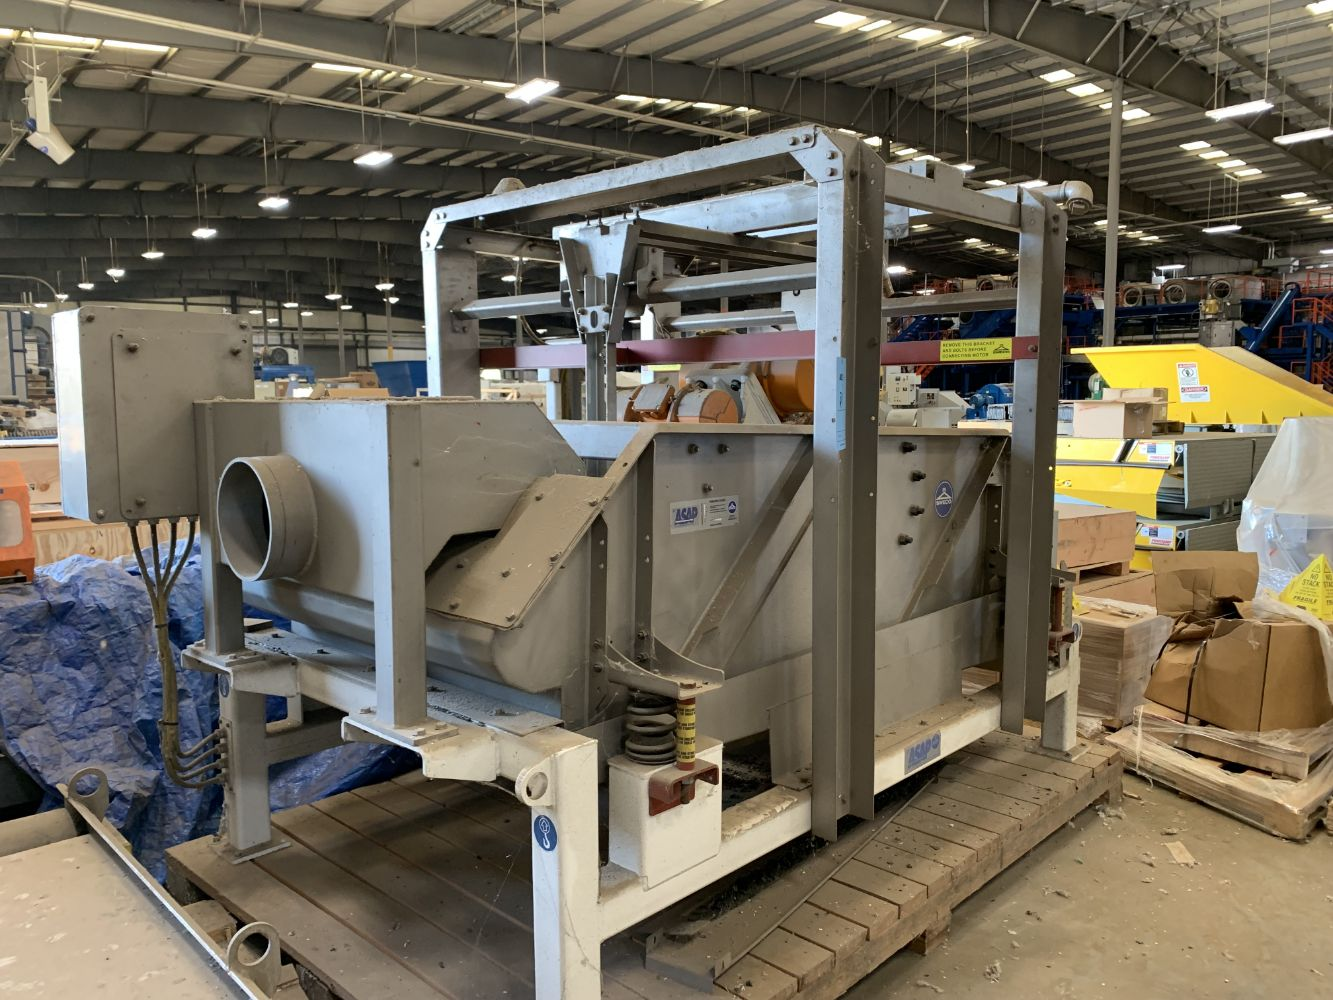 Surplus to the Ongoing Operations of KW Plastics